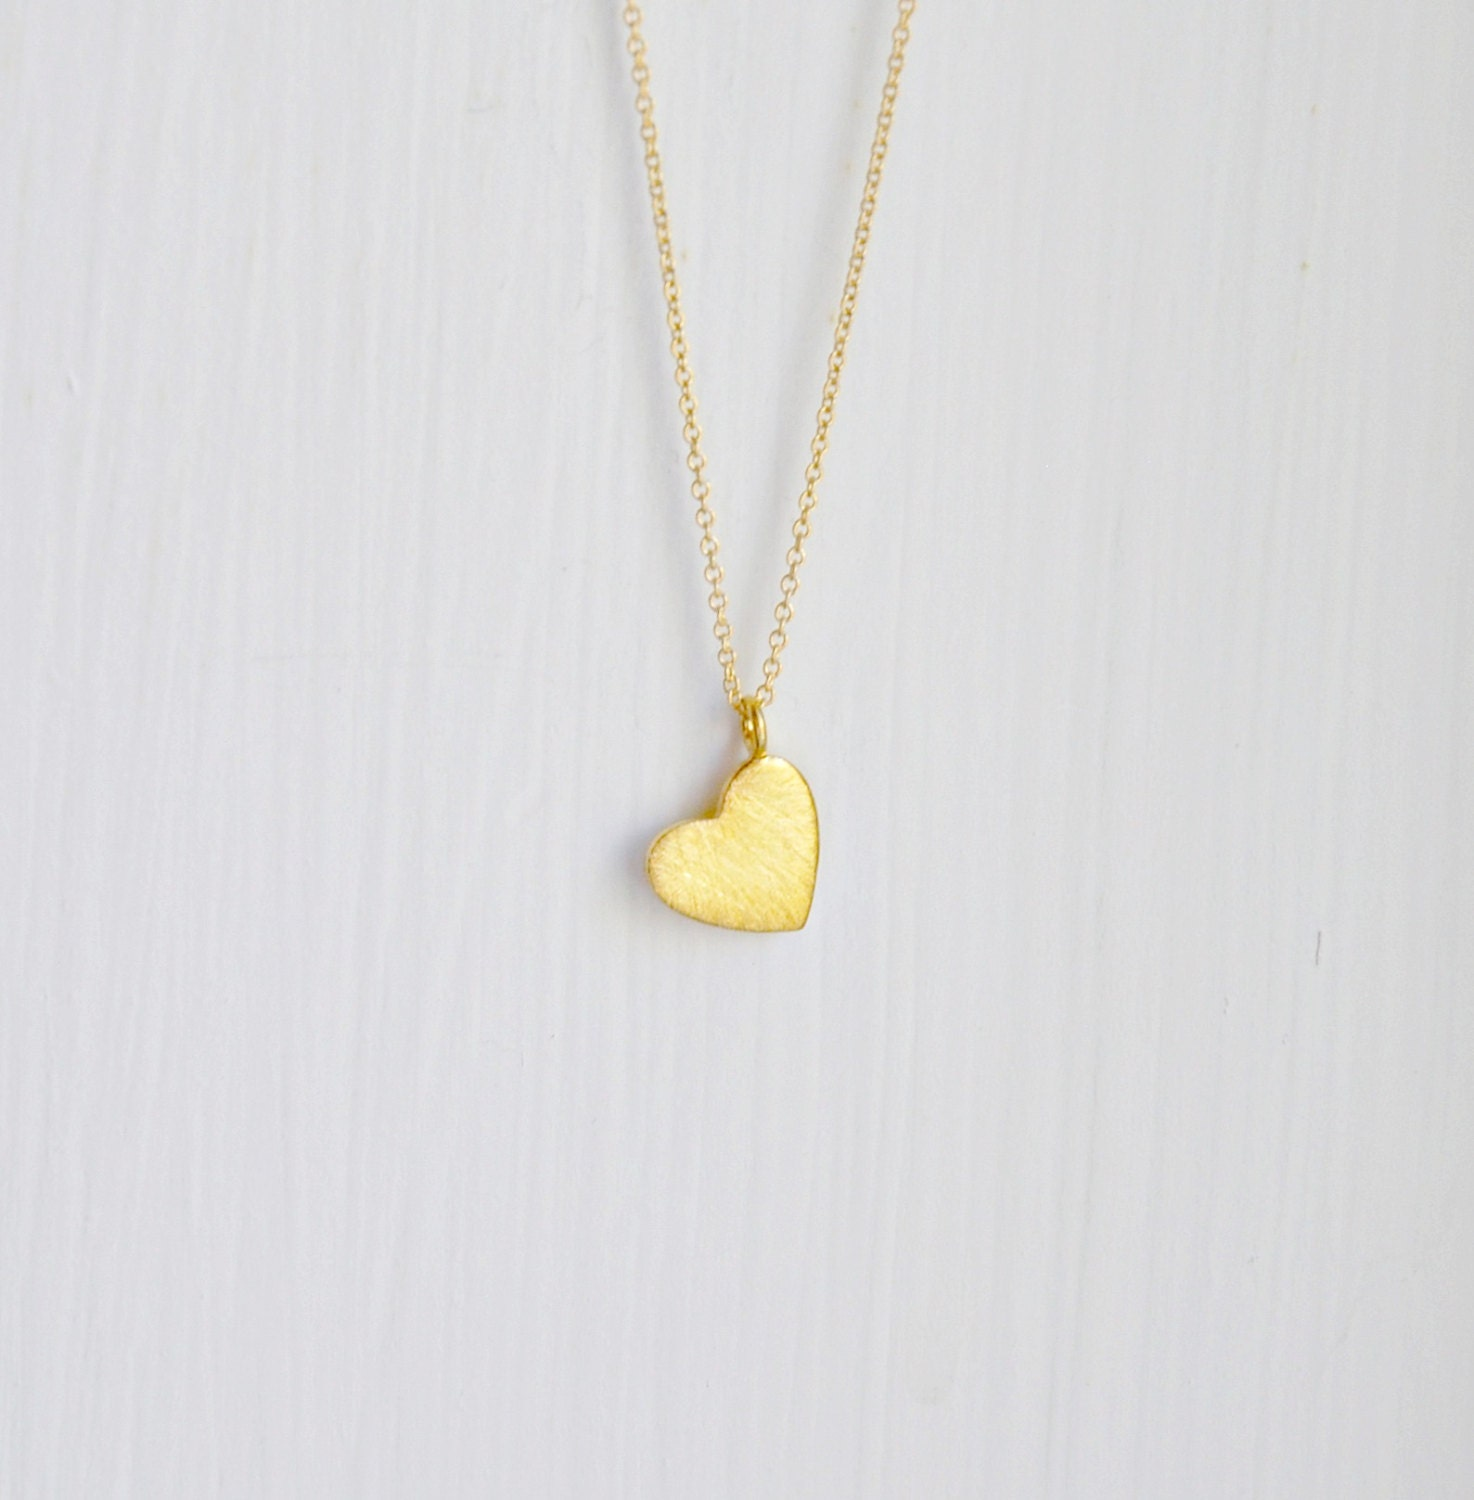 metallic macys in gold jewelry s designer pendant macy yellow lyst flat necklace heart